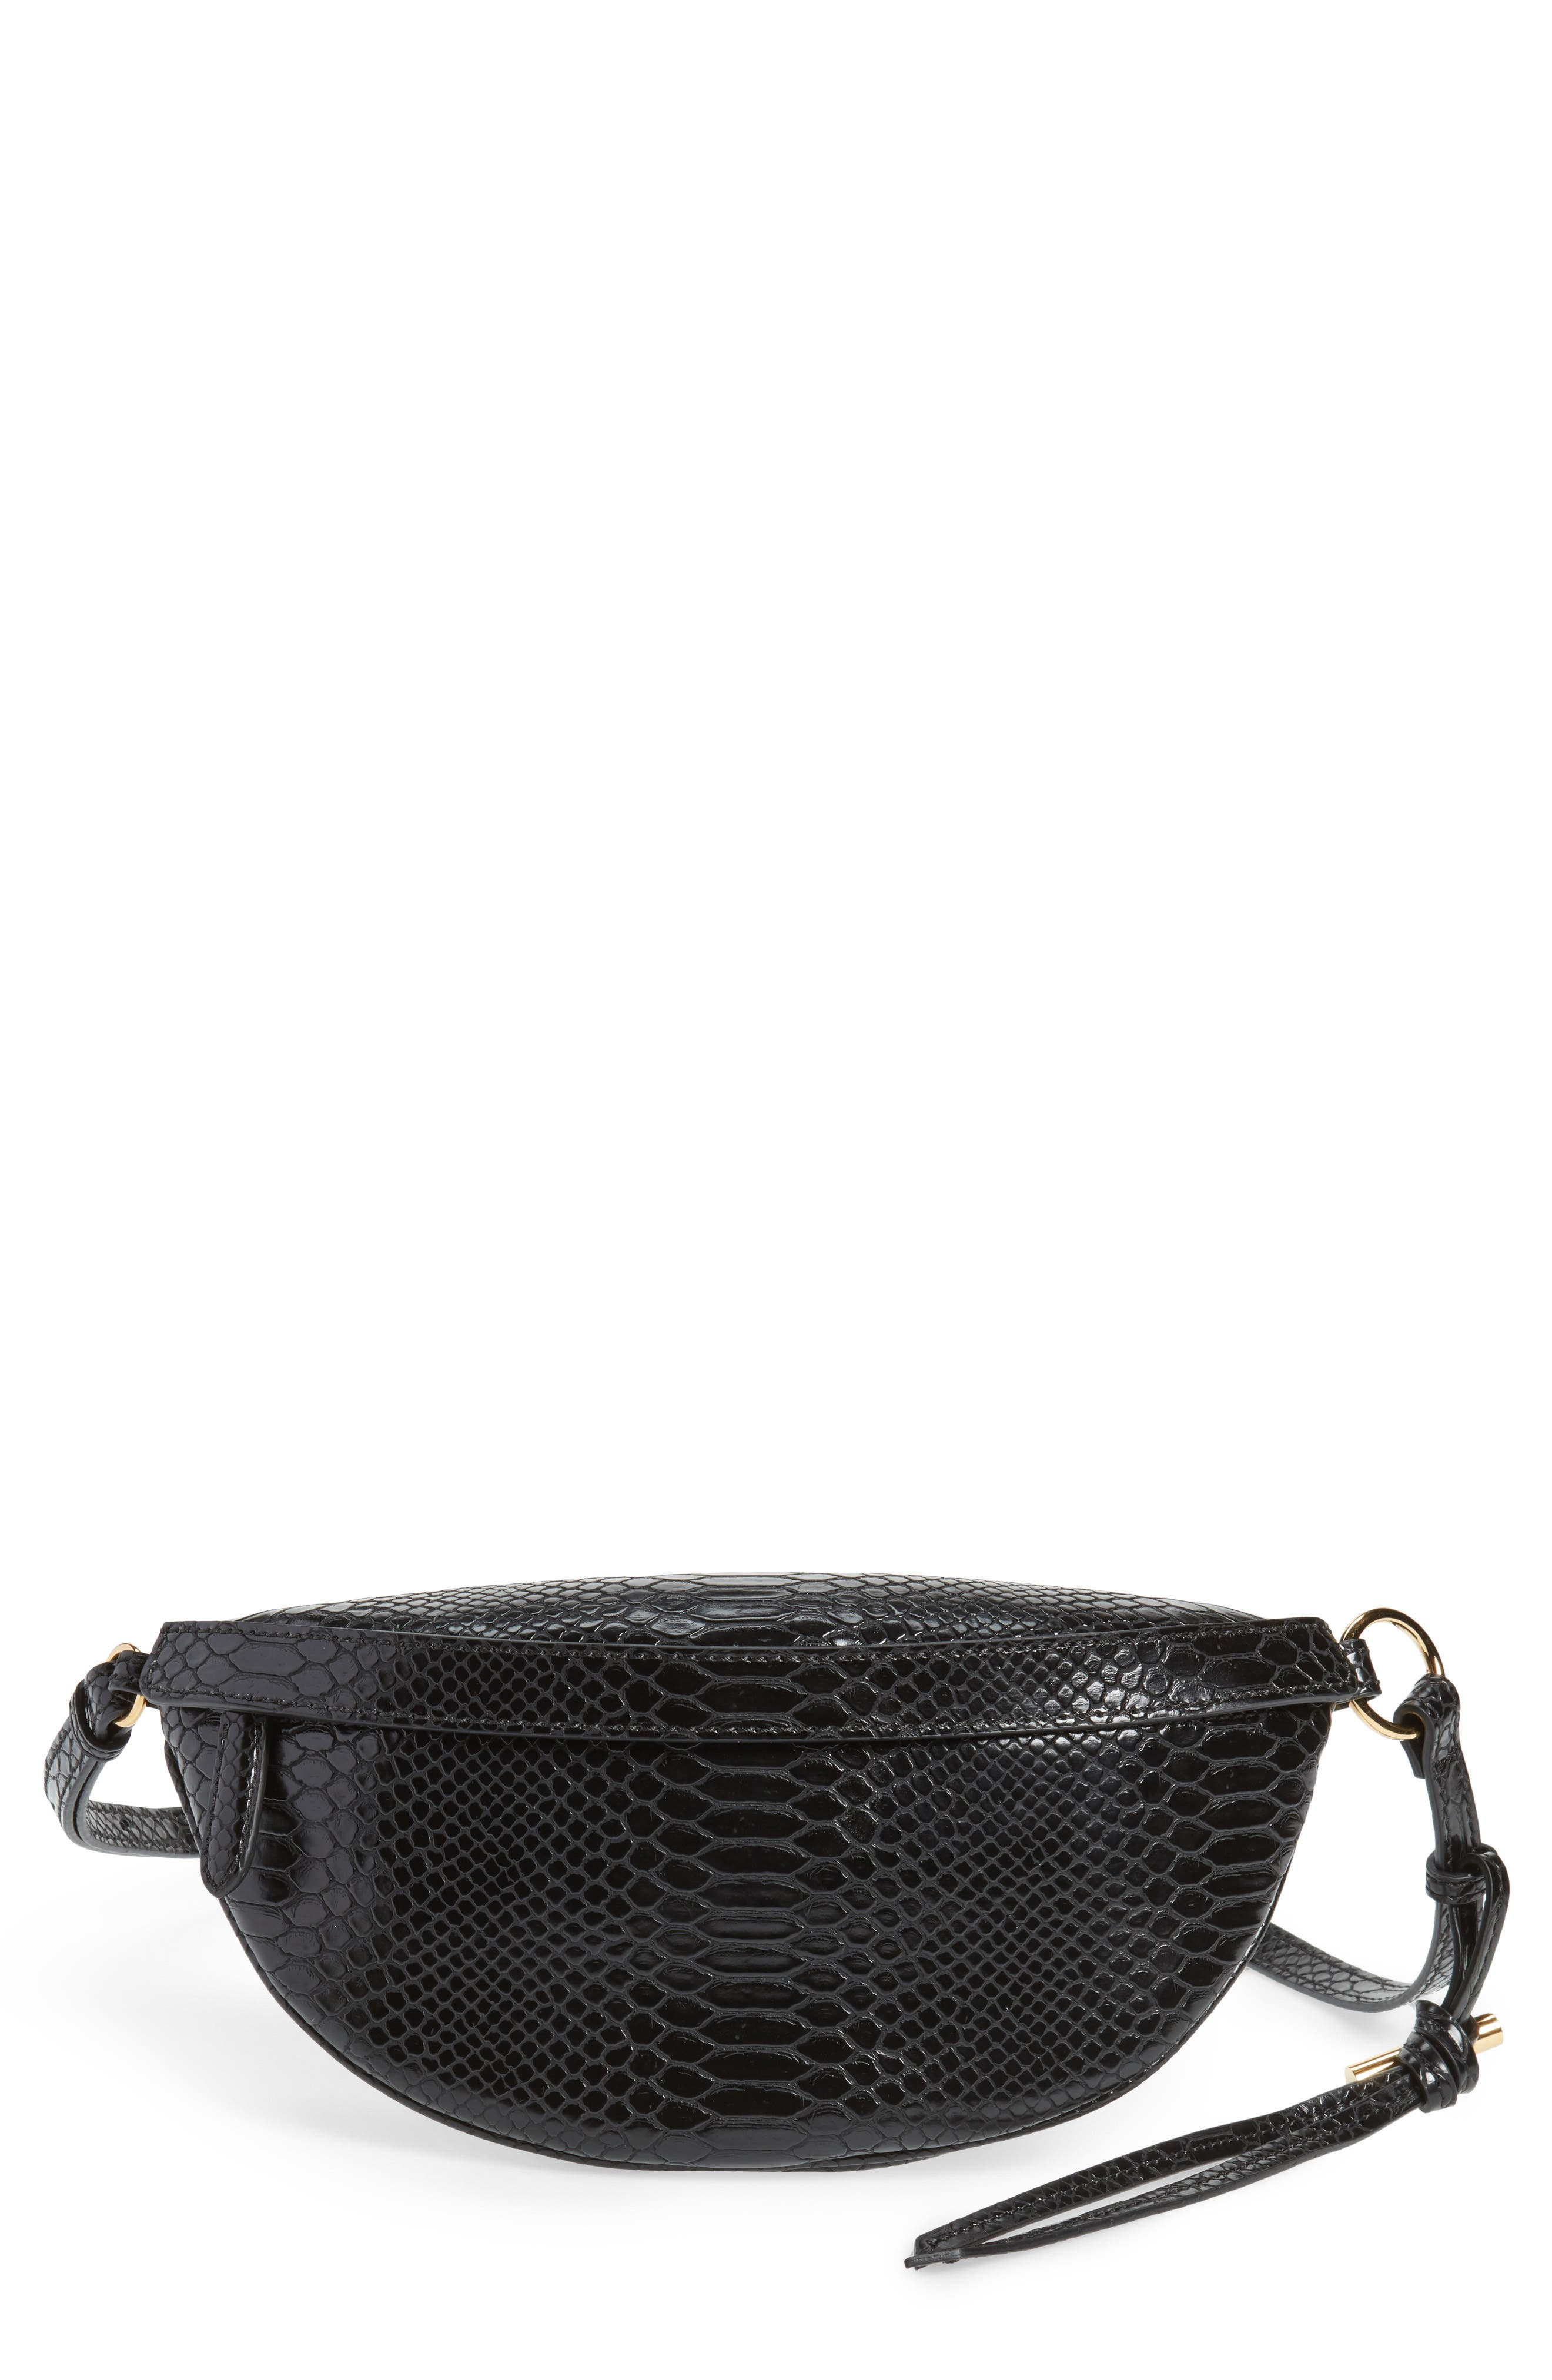 Stella McCartney Alter Snake Faux Leather Fanny Pack